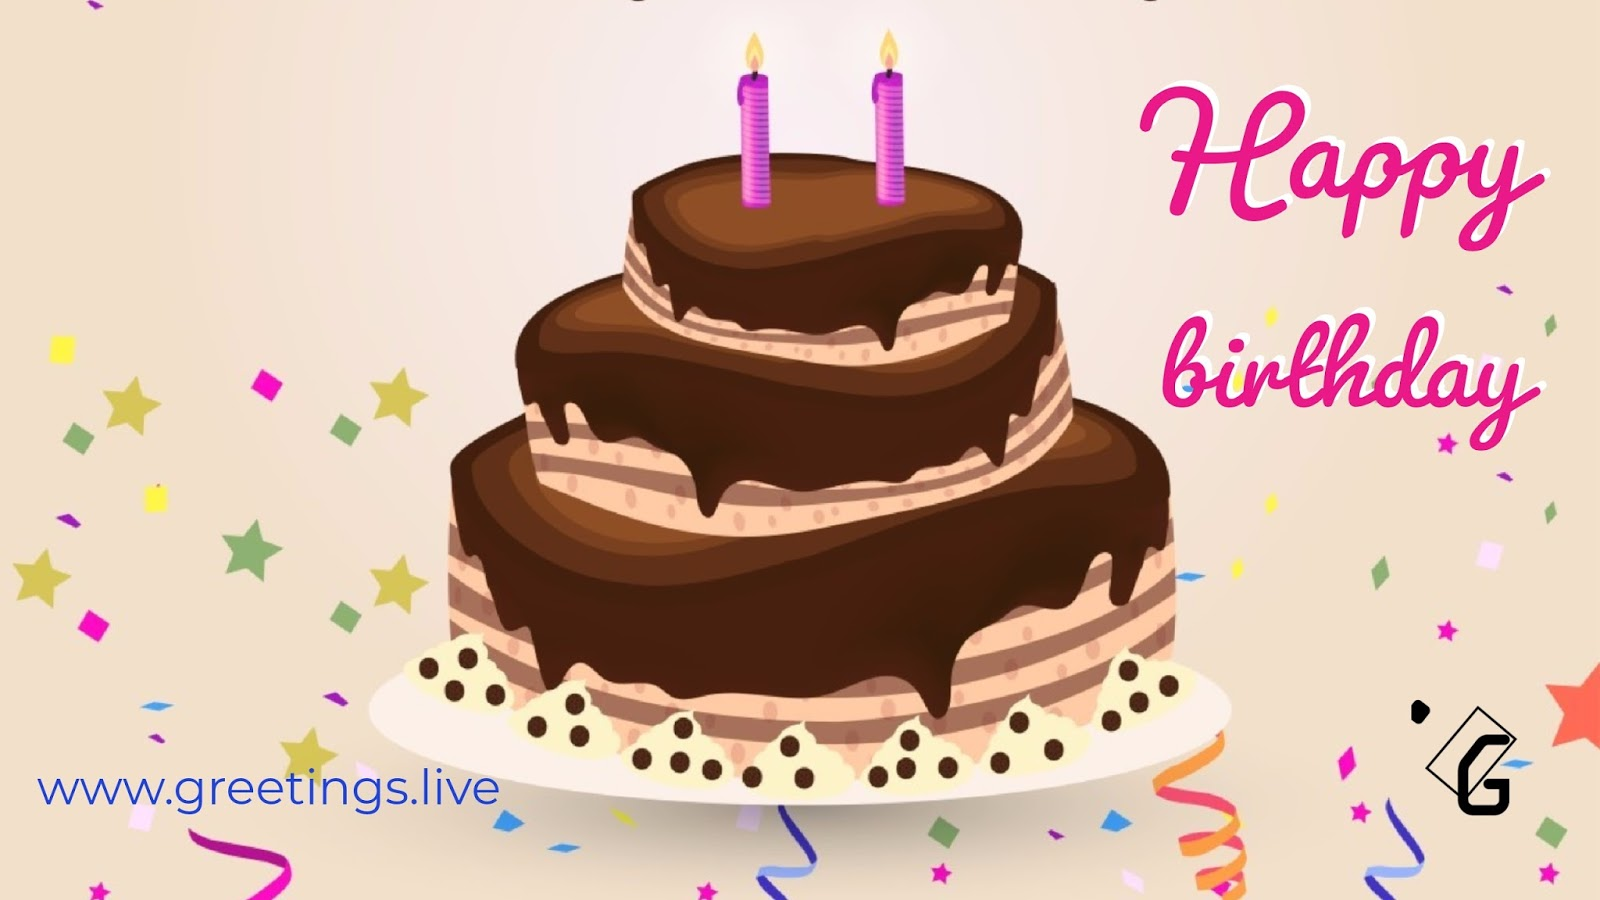 Greetingsve hd images love smile birthday wishes free download smart simple birthday wishes hd greetings live kristyandbryce Images